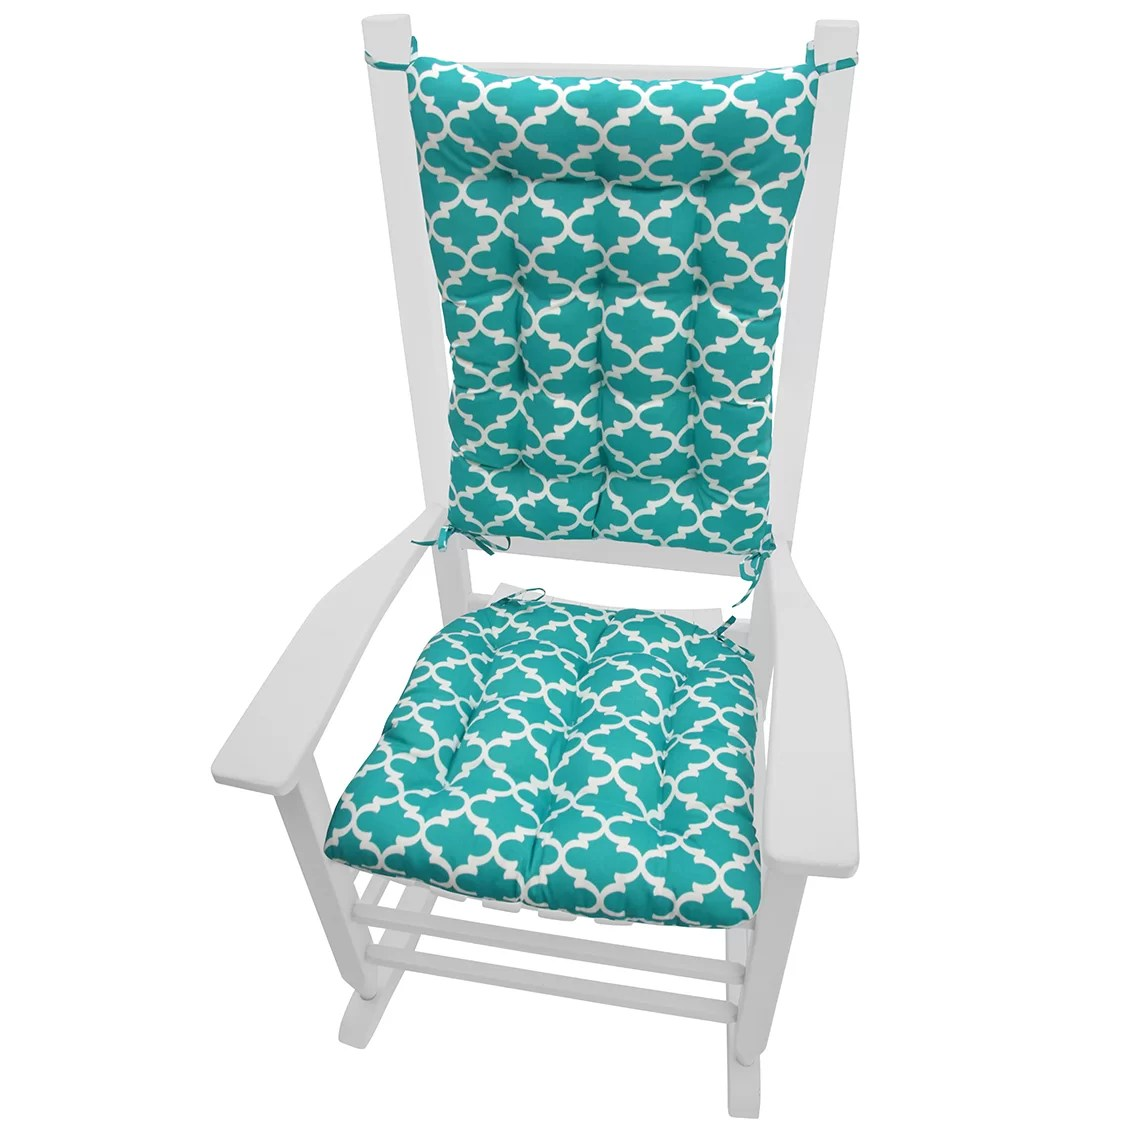 Outdoor Rocking Chair Pads